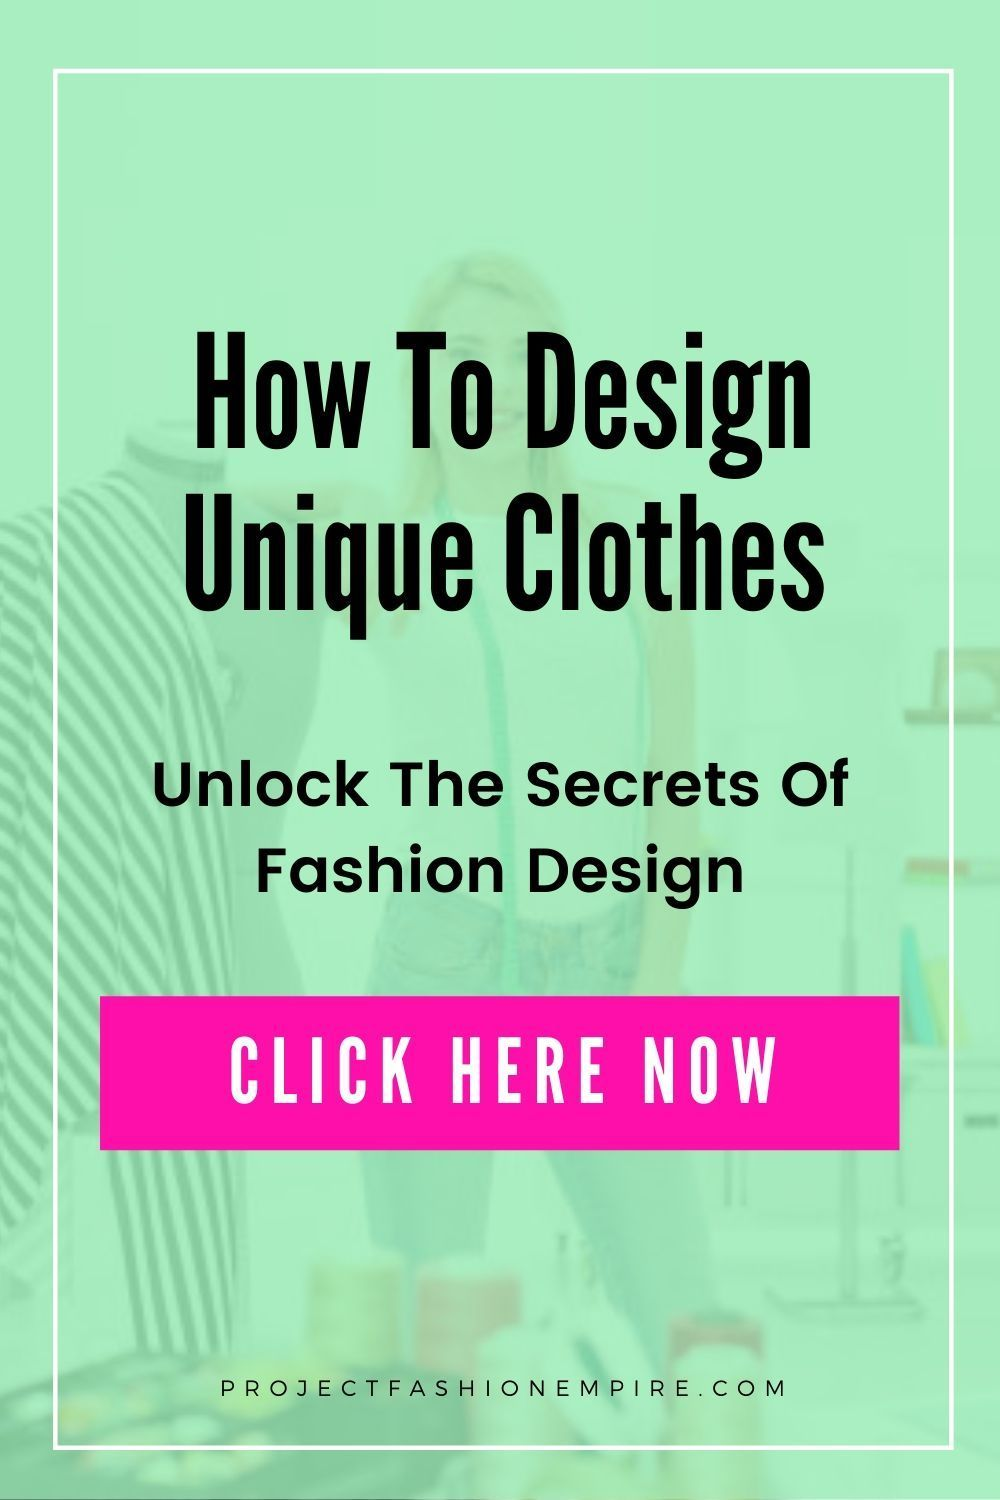 Fashion Design Masterclass In 2020 With Images Fashion Design Collection Fashion Inspiration Design Fashion Design